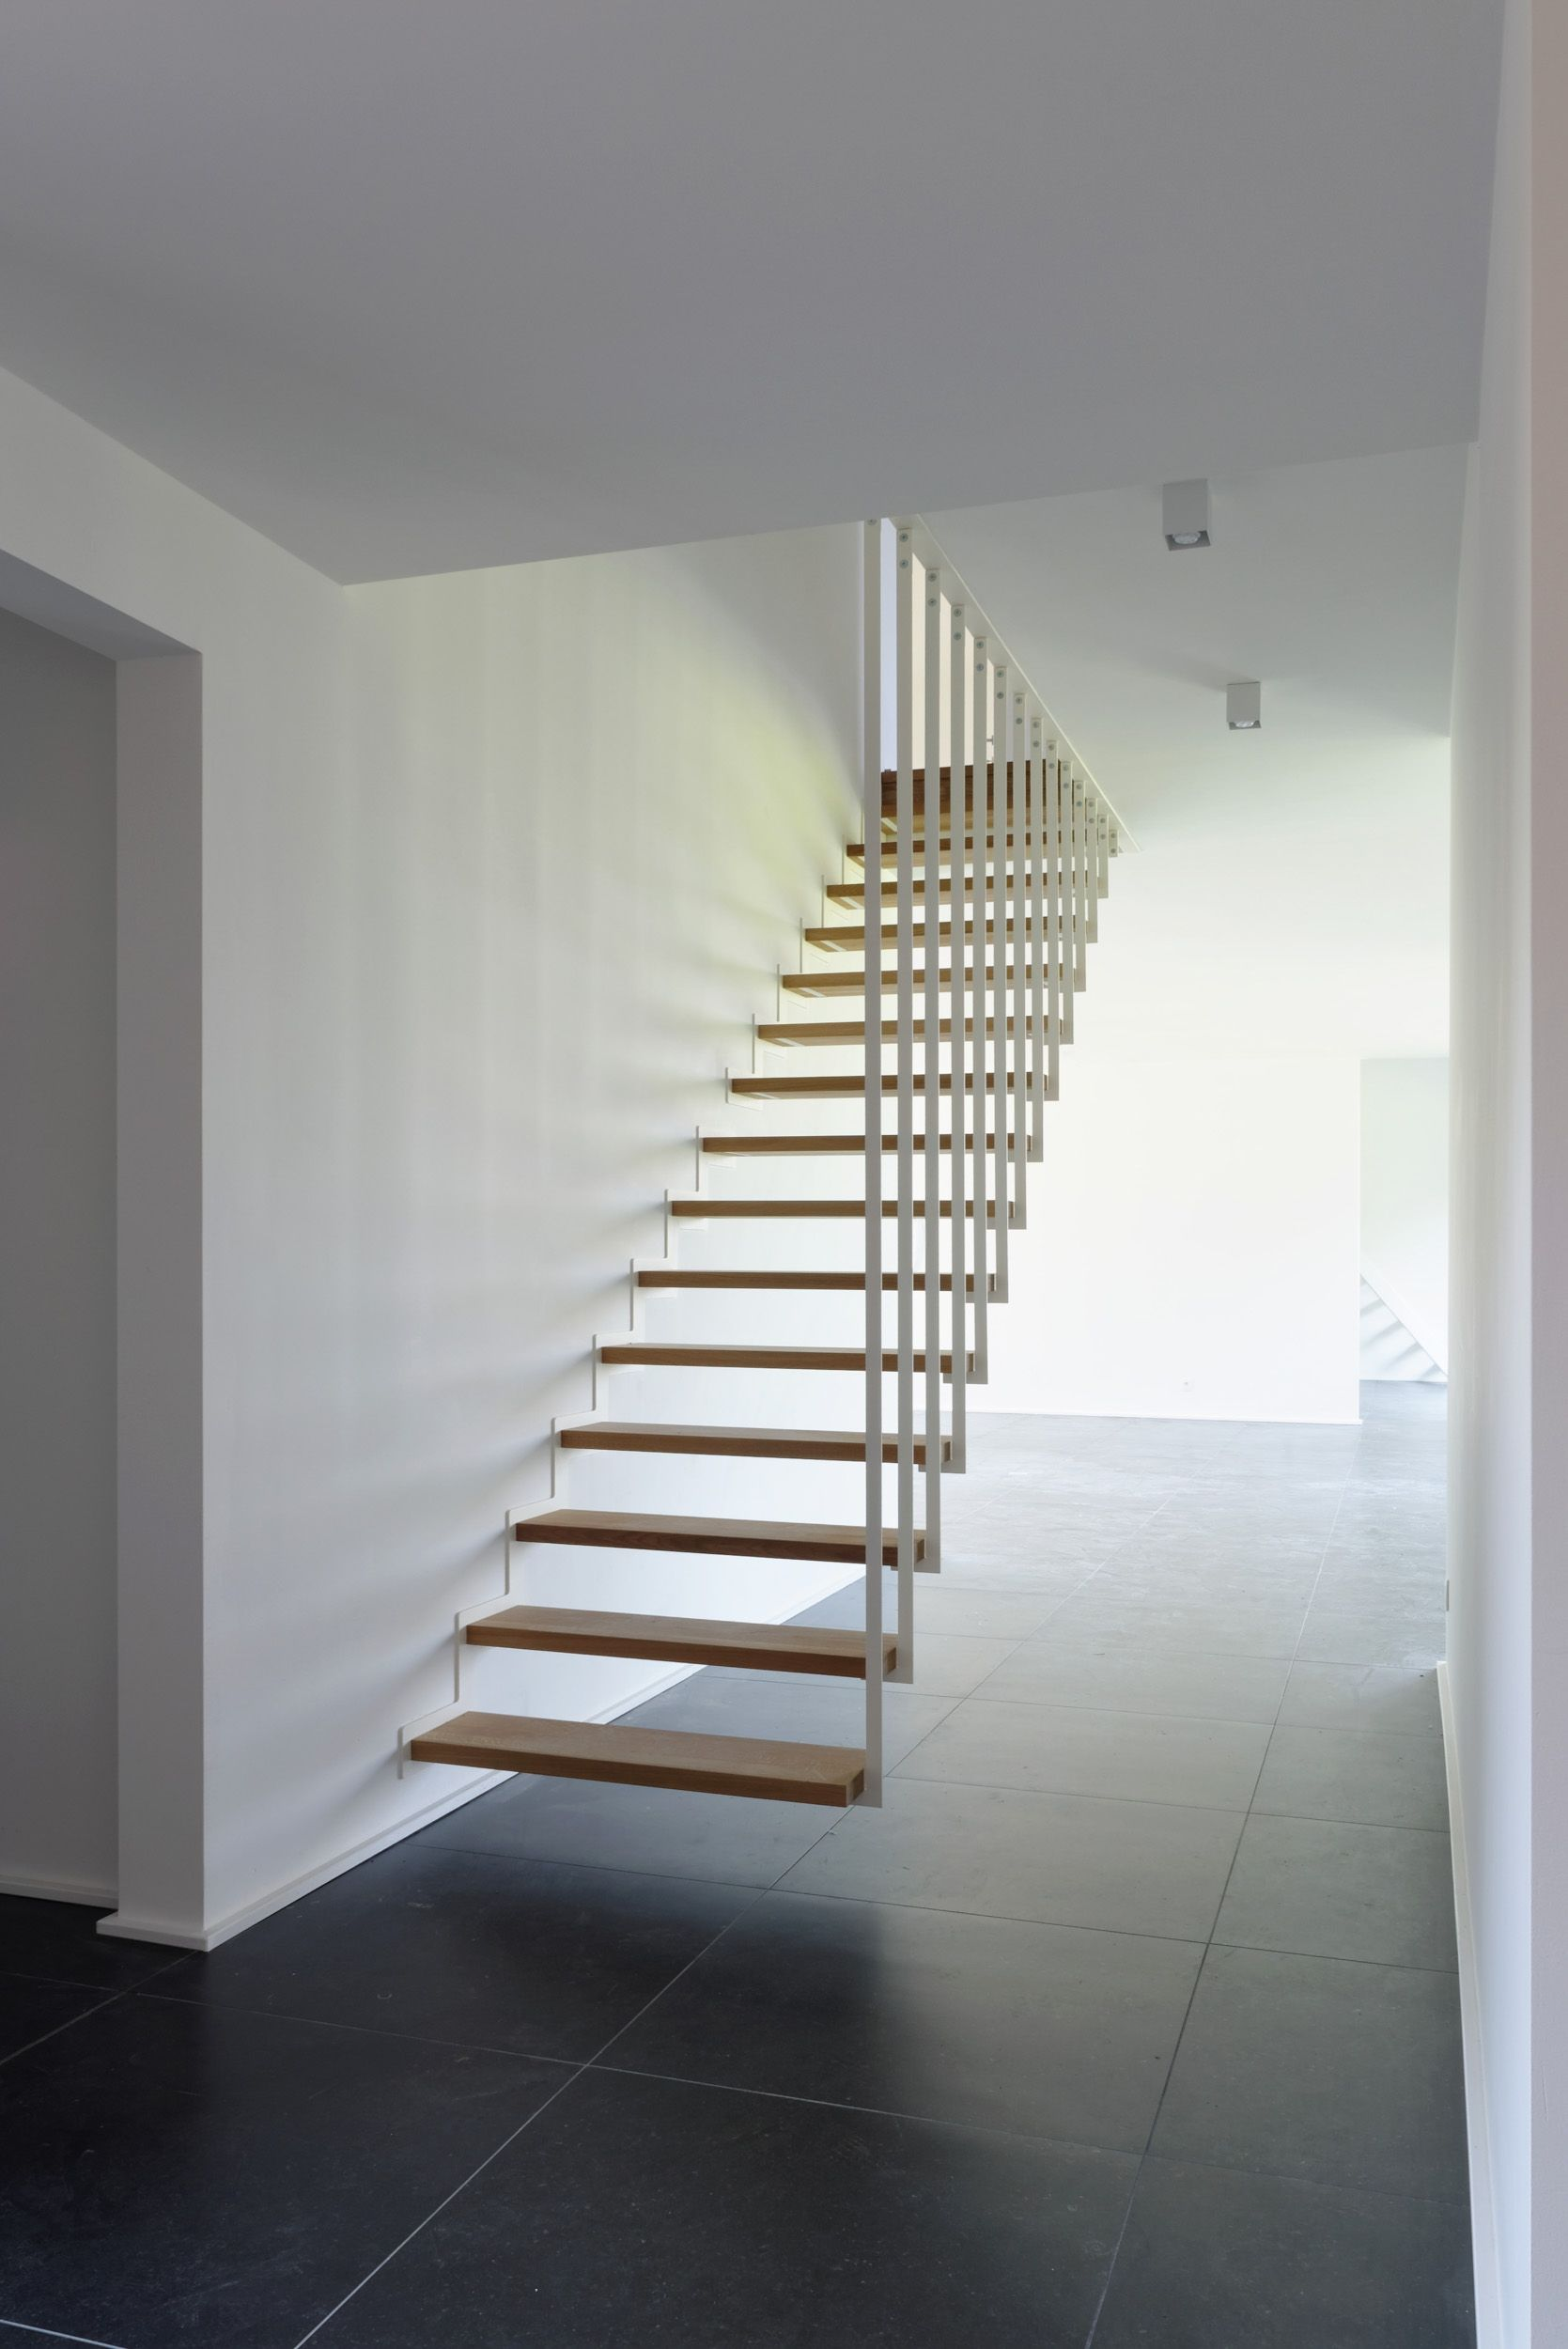 Jo A Up Suspended Staircase The Floating Stair In Its